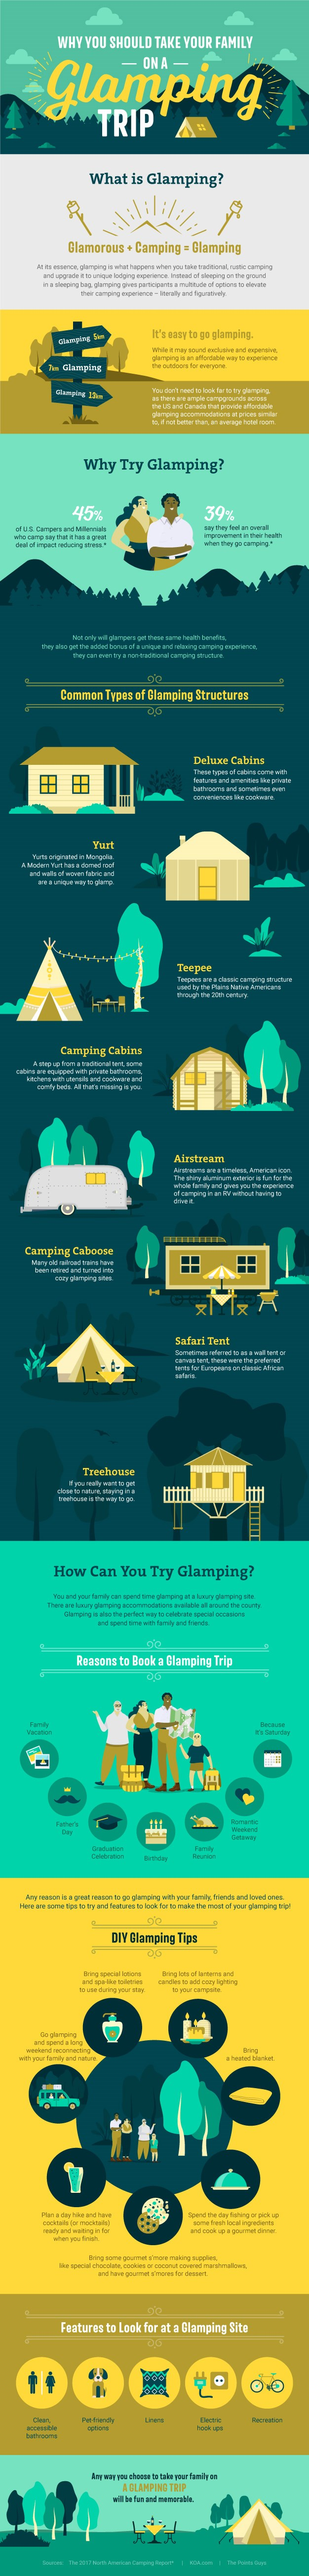 How to Go Glamping Infographic